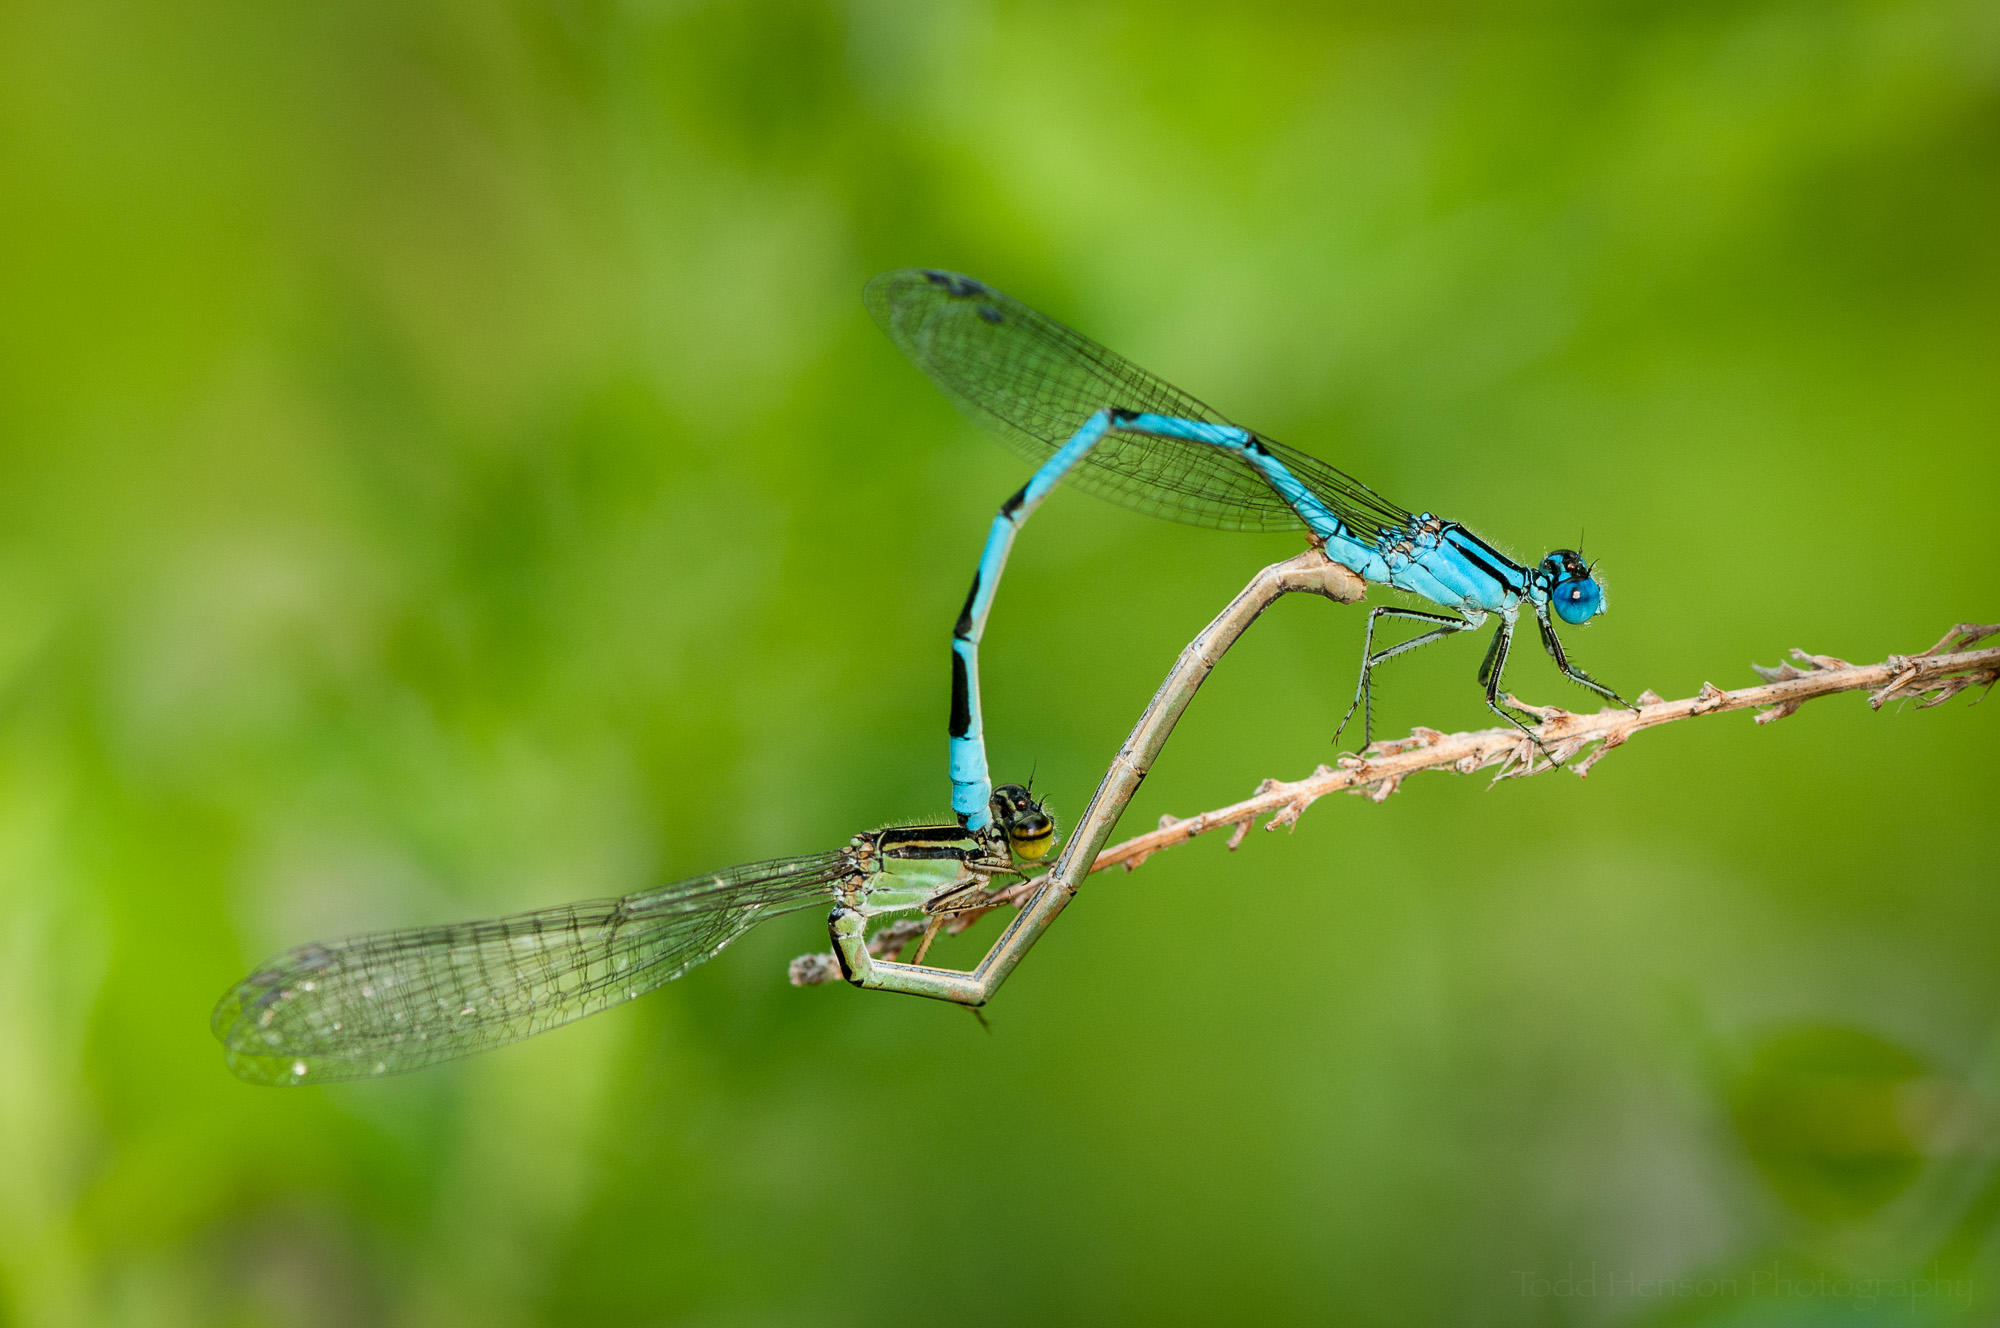 Pair of mating Familiar Bluet Damselflies. The male is blue, the female is green-brown.